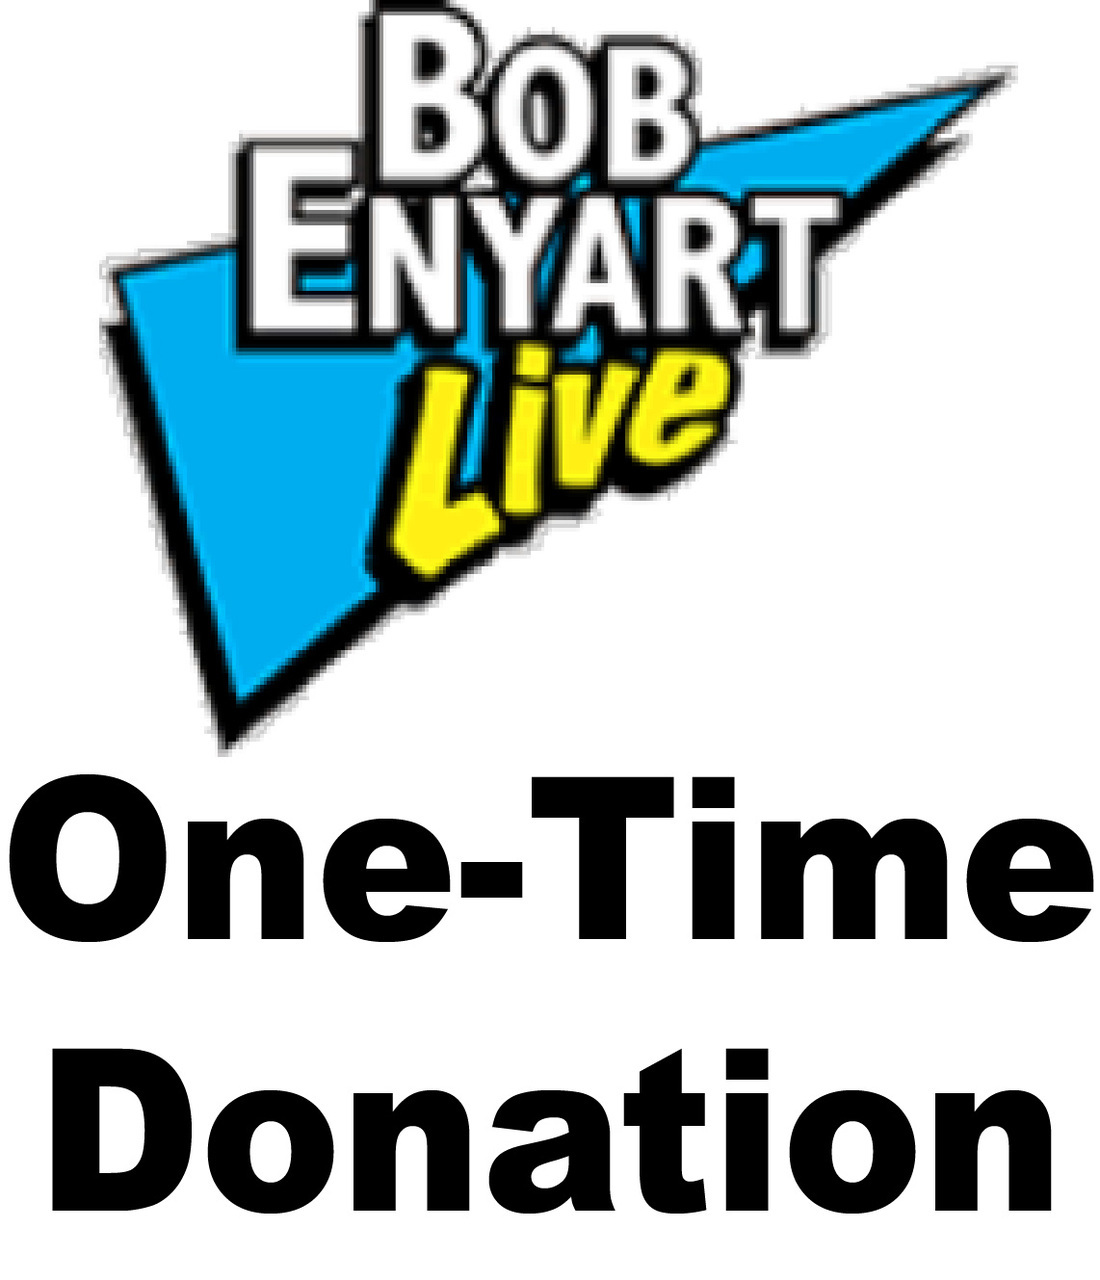 One_time_donate__14537.1422583730.jpg